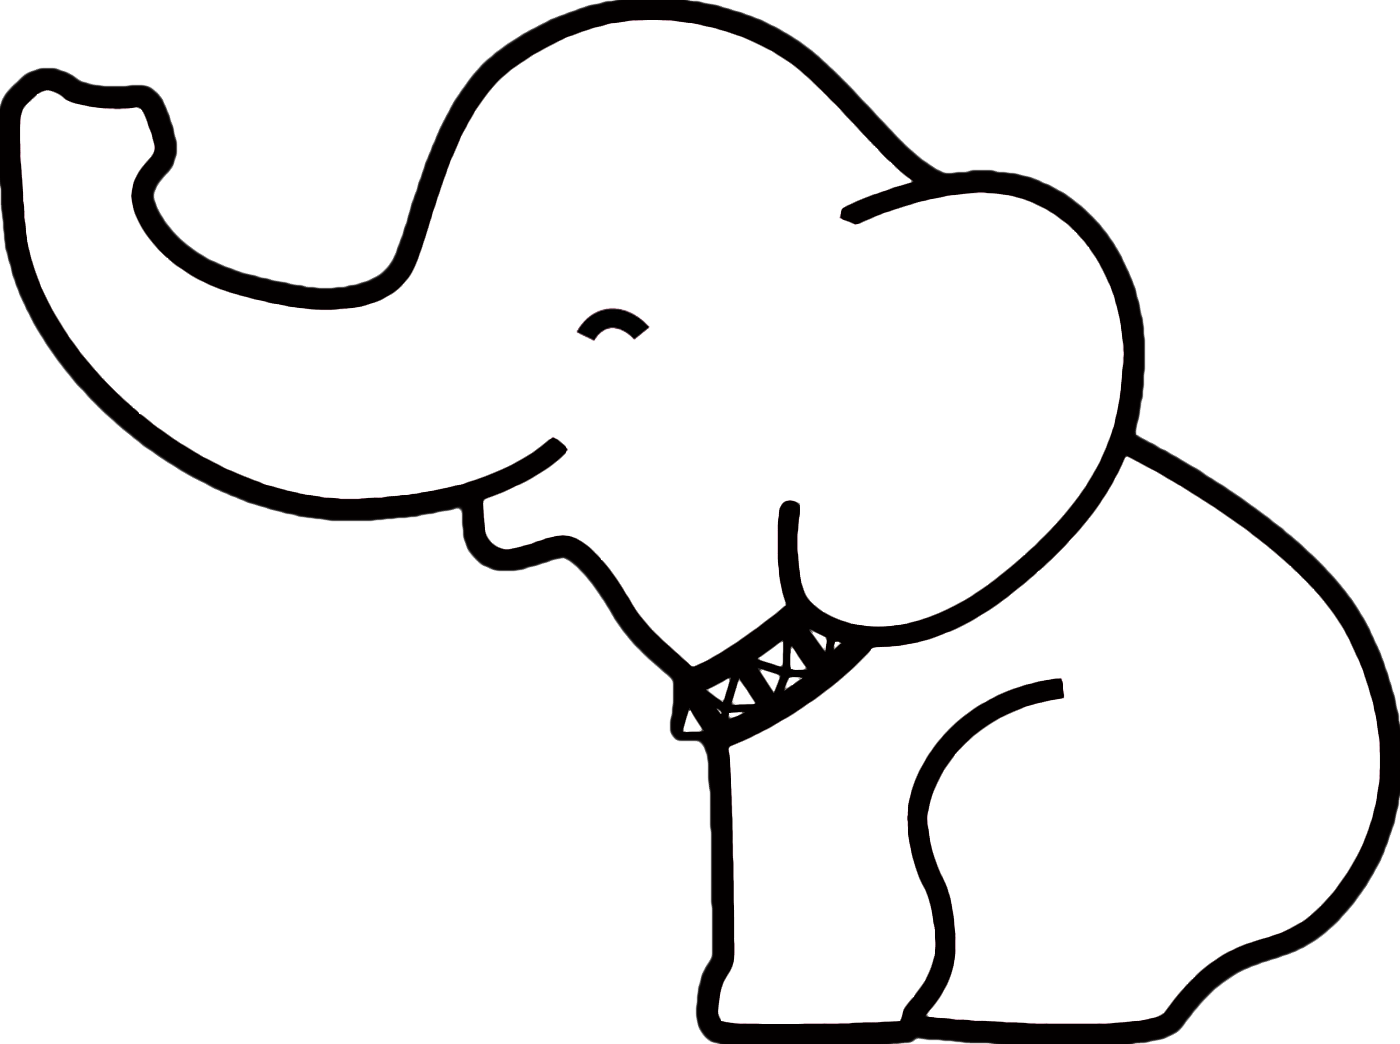 Mandala clipart elephant. Pin outline on pinterest